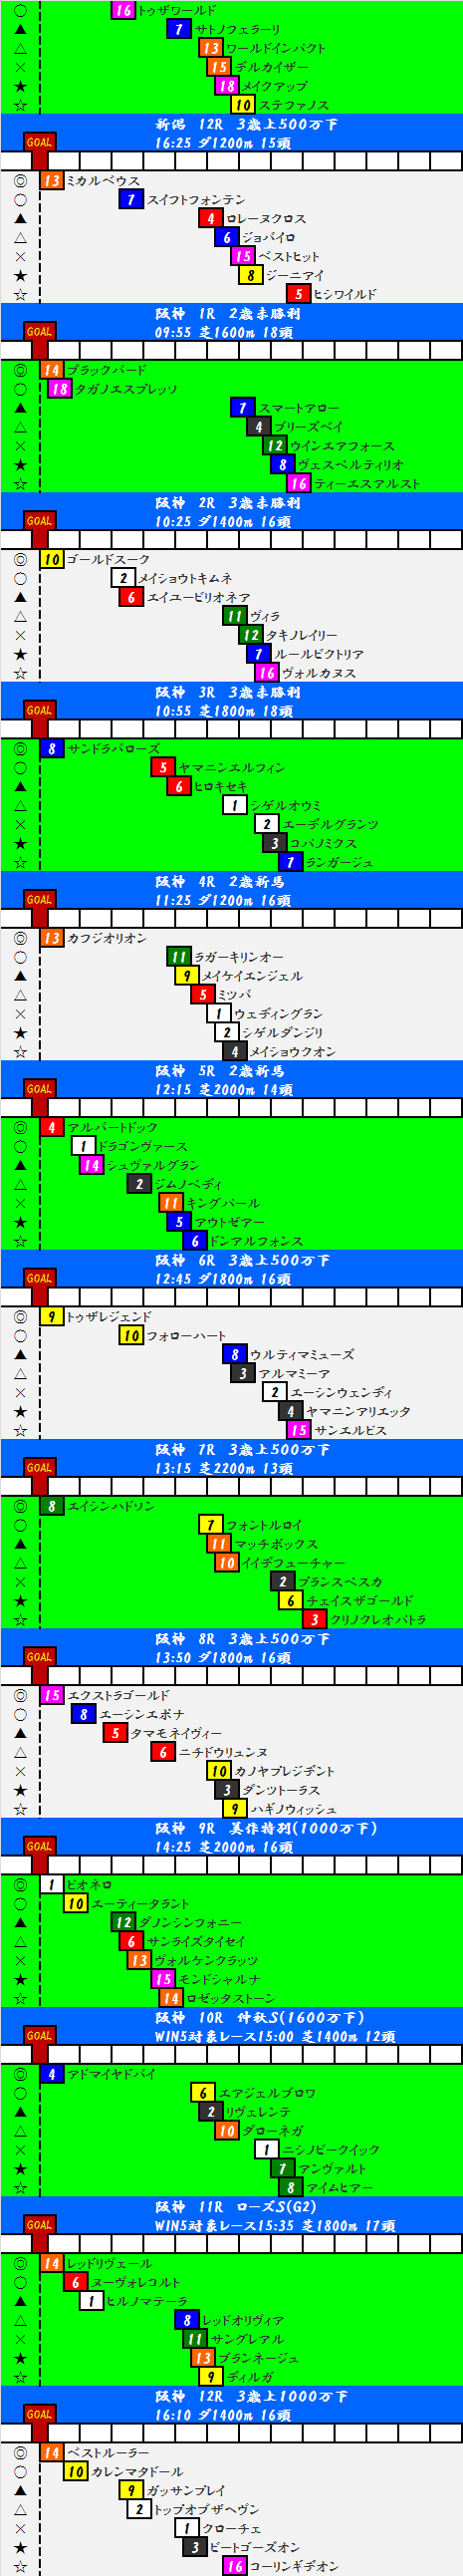 2014092102.png